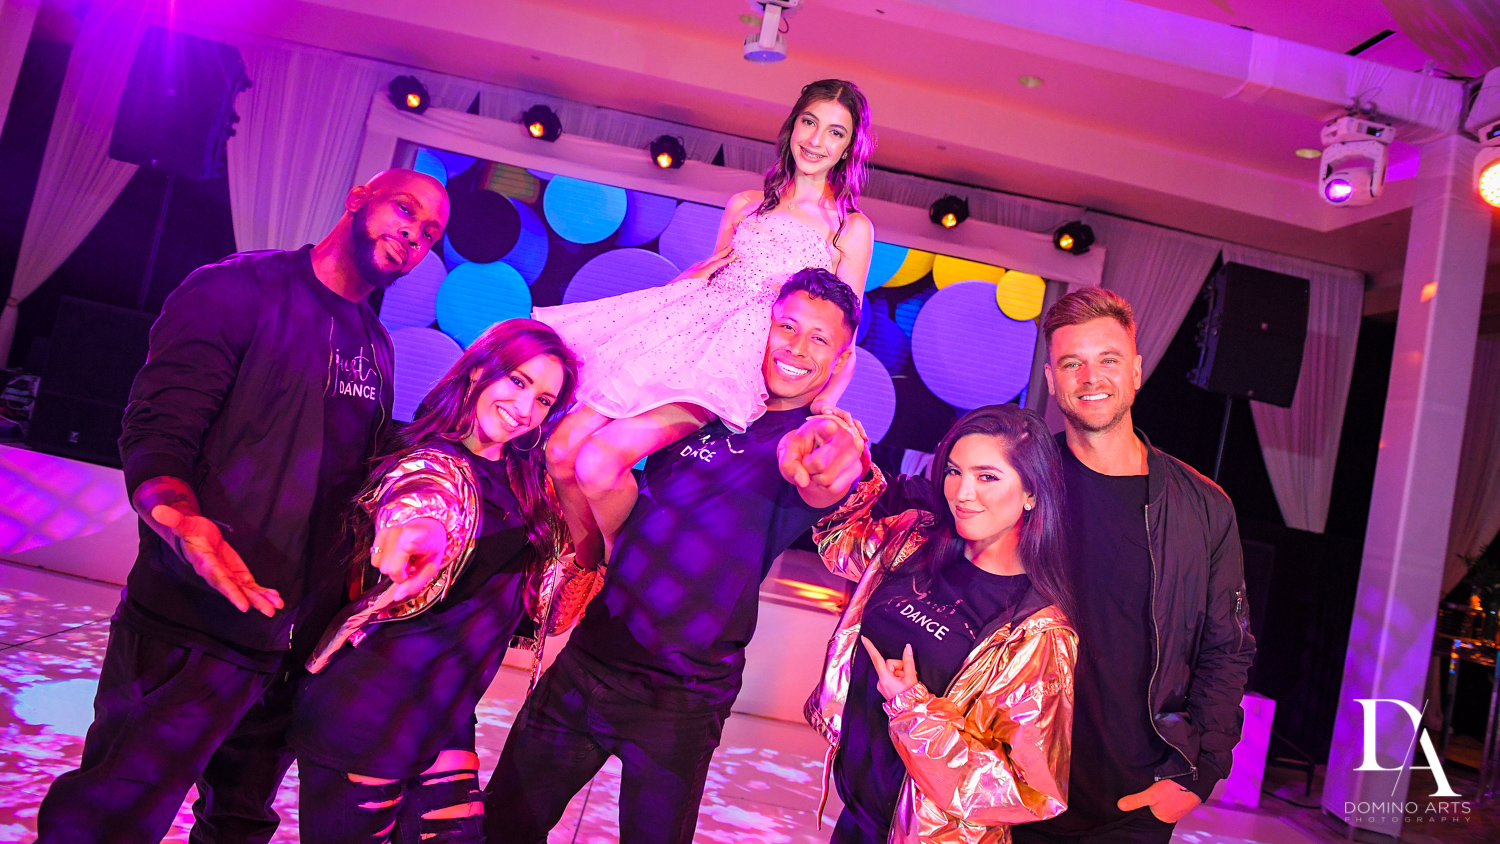 Rock With U at Masquerade Ball Bat Mitzvah at Ritz Carlton Fort Lauderdale by Domino Arts Photography